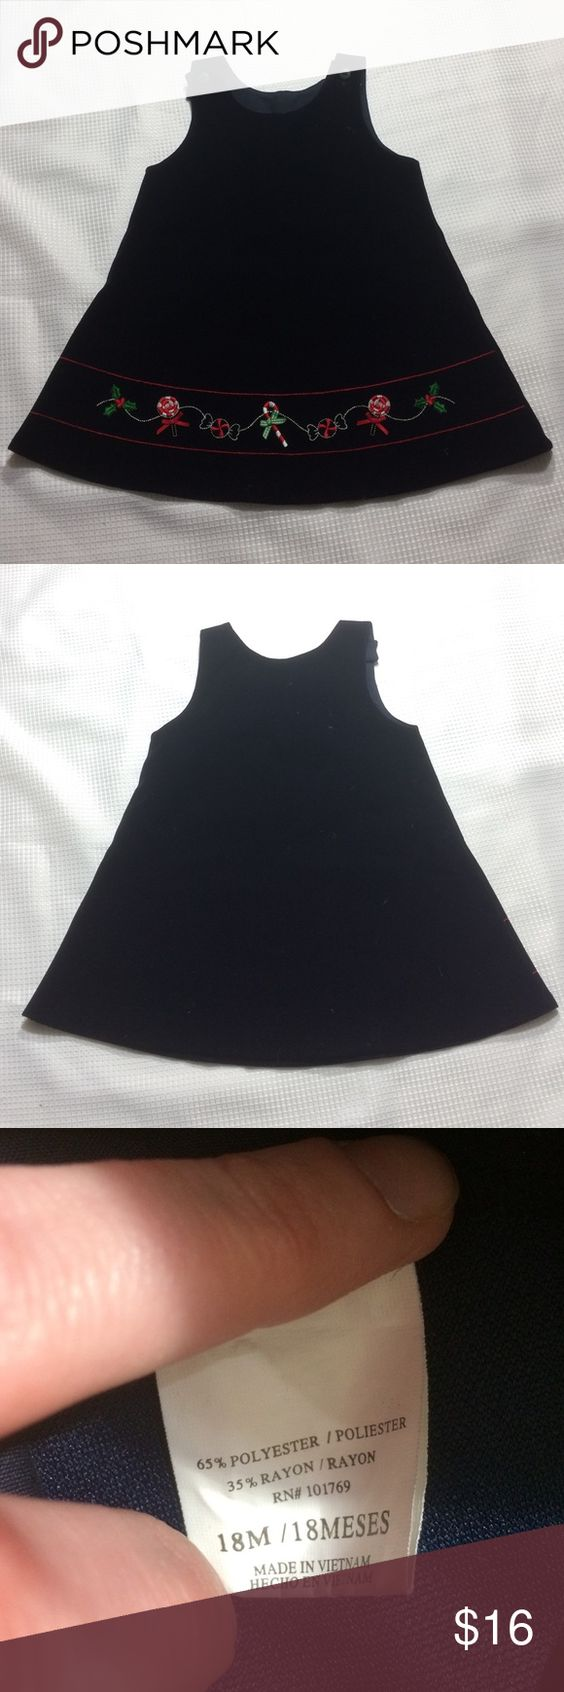 Which christmas gown ideas with holed - Black Velvet Christmas Dress Euc No Holes Or Stains Dresses Formal